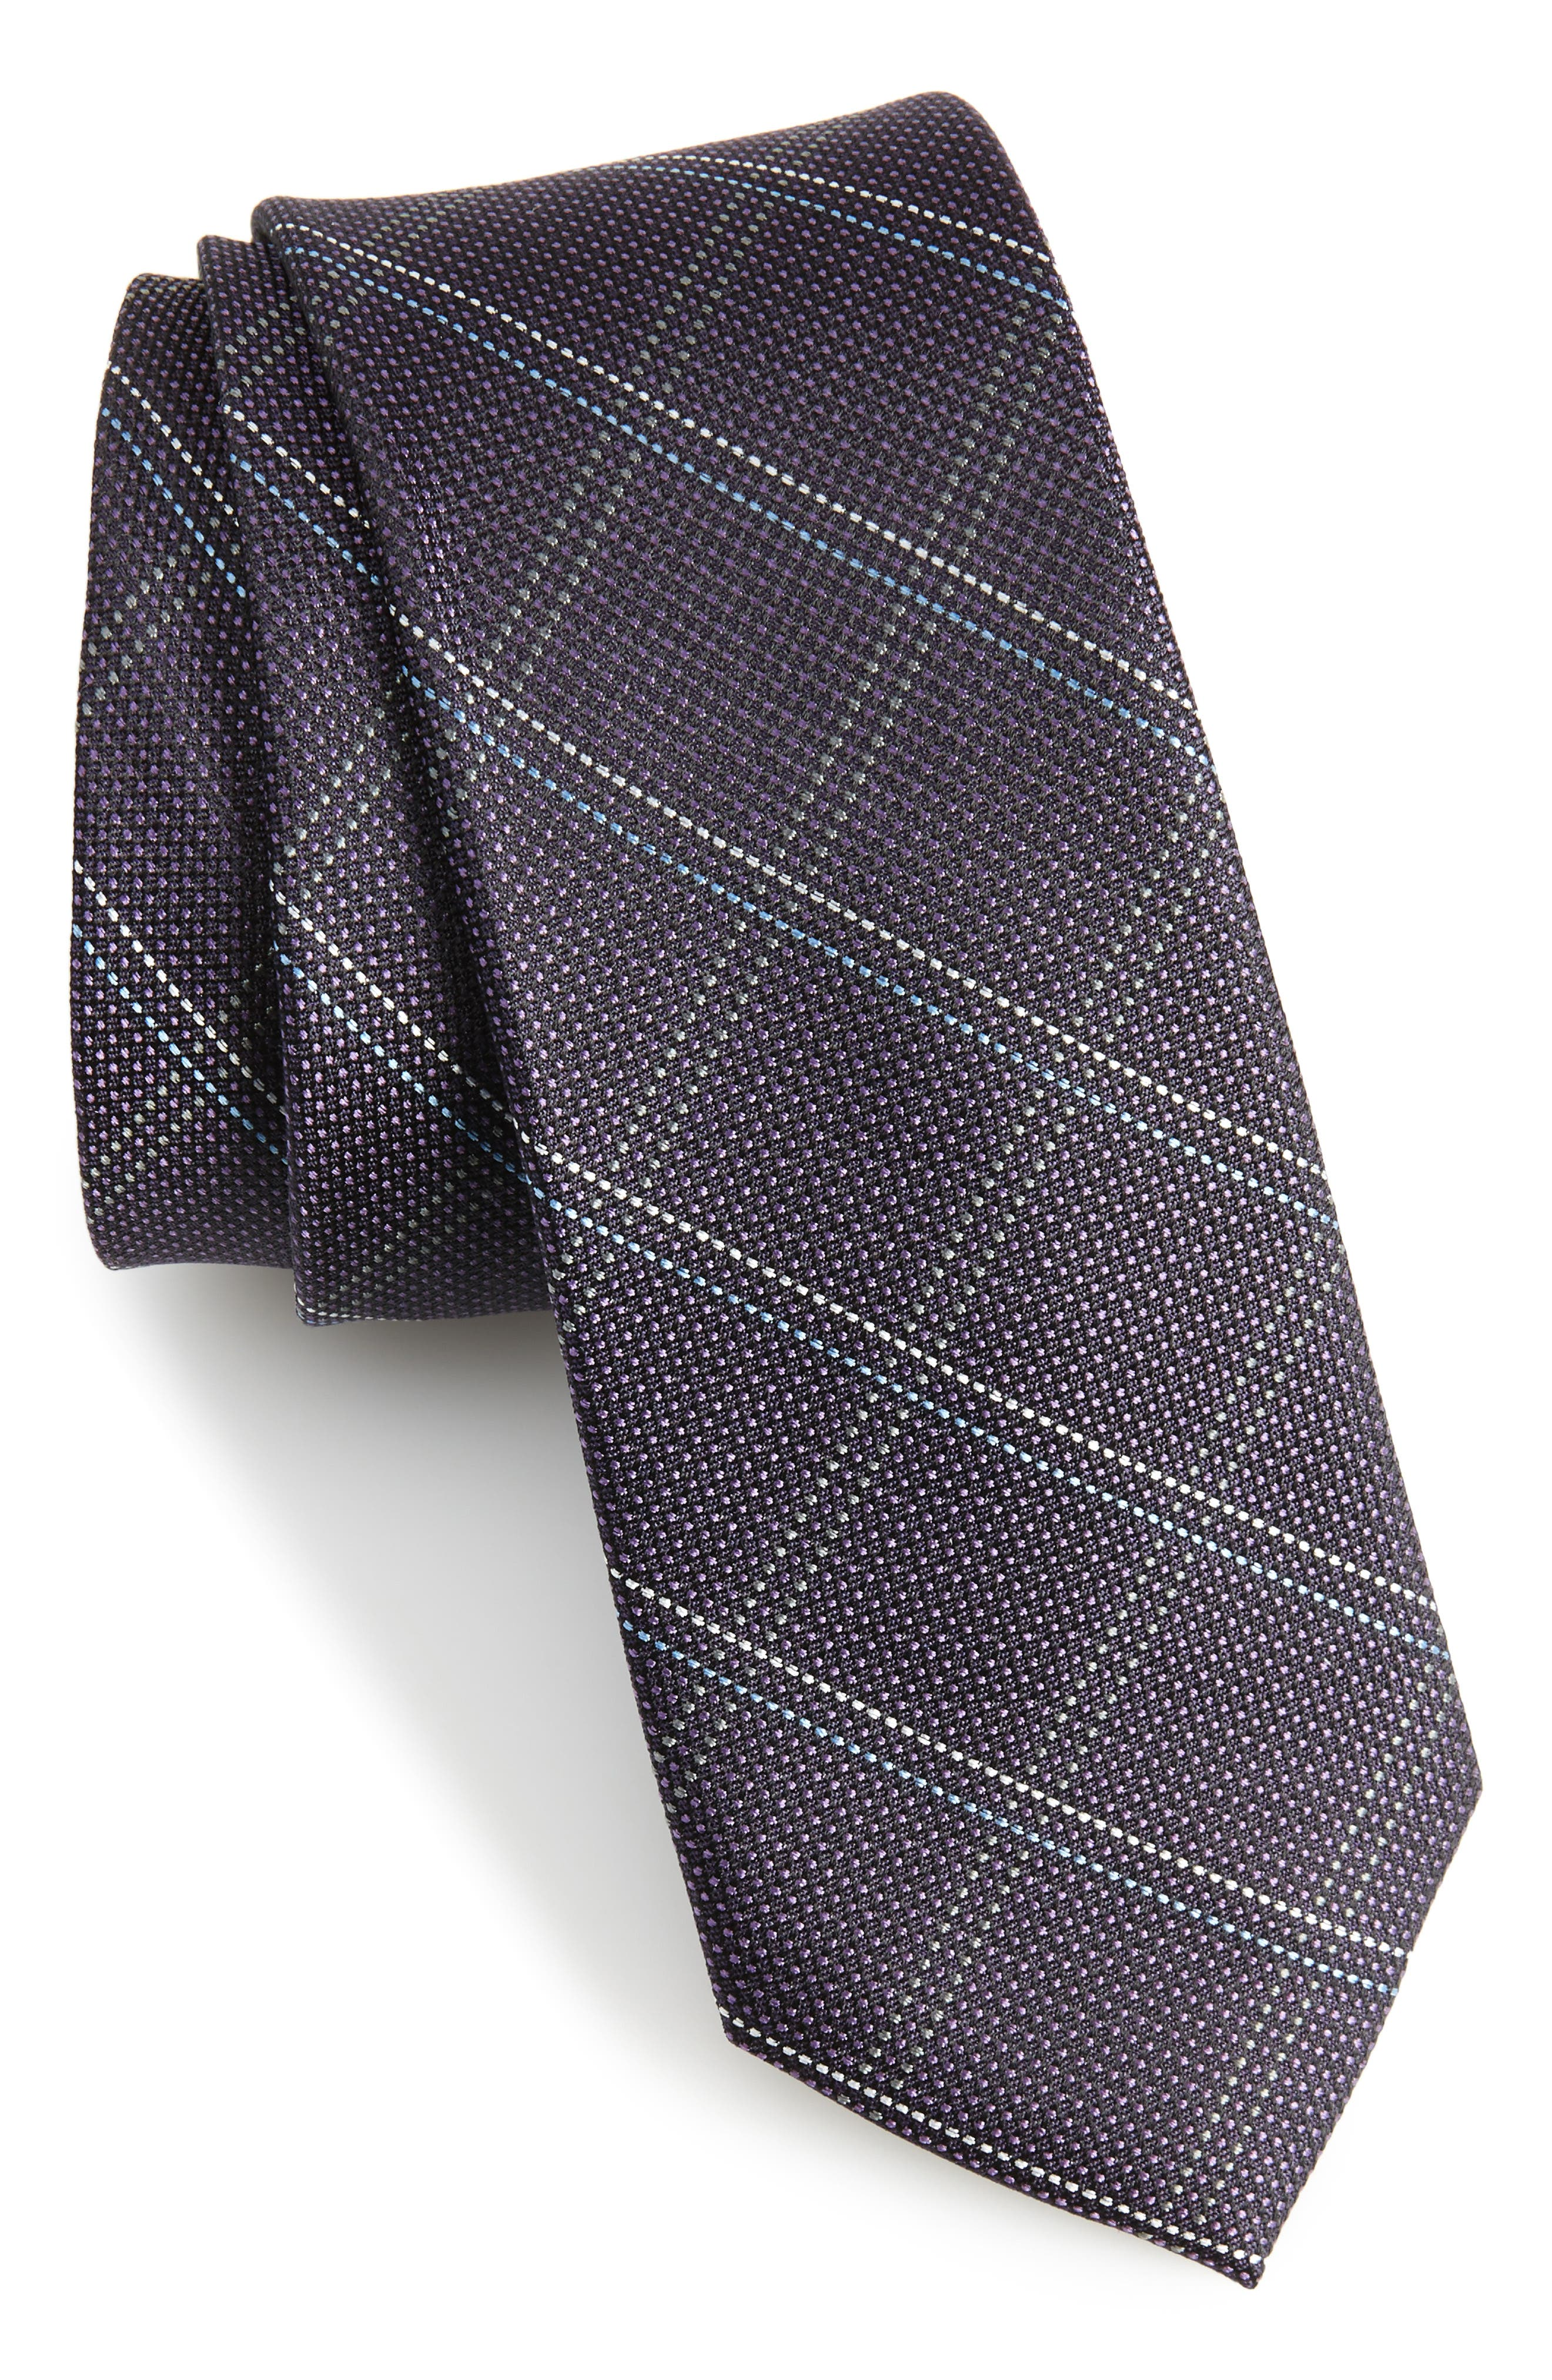 Alternate Image 1 Selected - The Tie Bar Wingman Checks Silk Skinny Tie